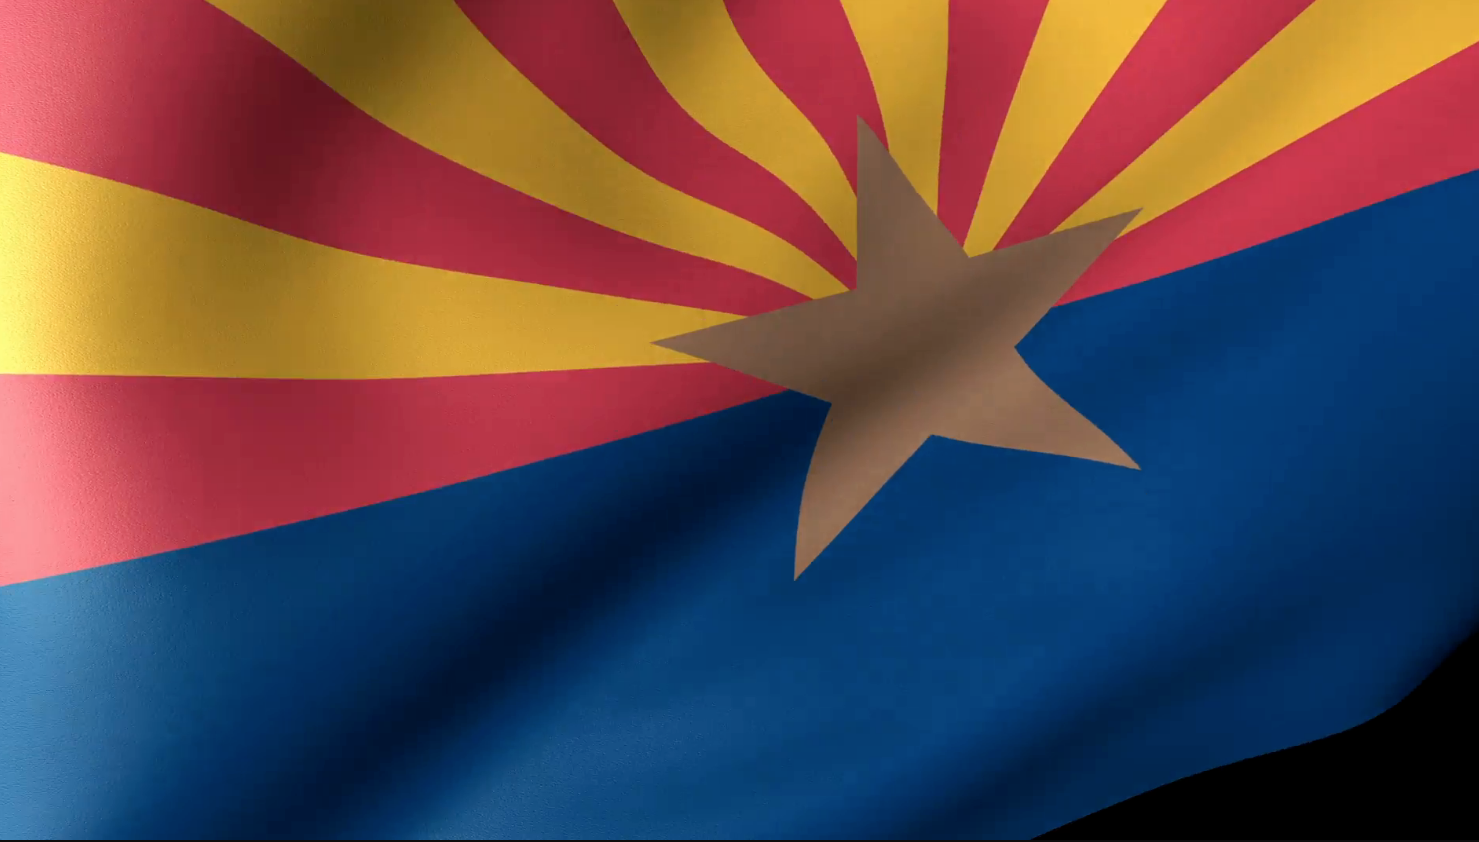 NOW HIRING: These places are looking for workers across Arizona